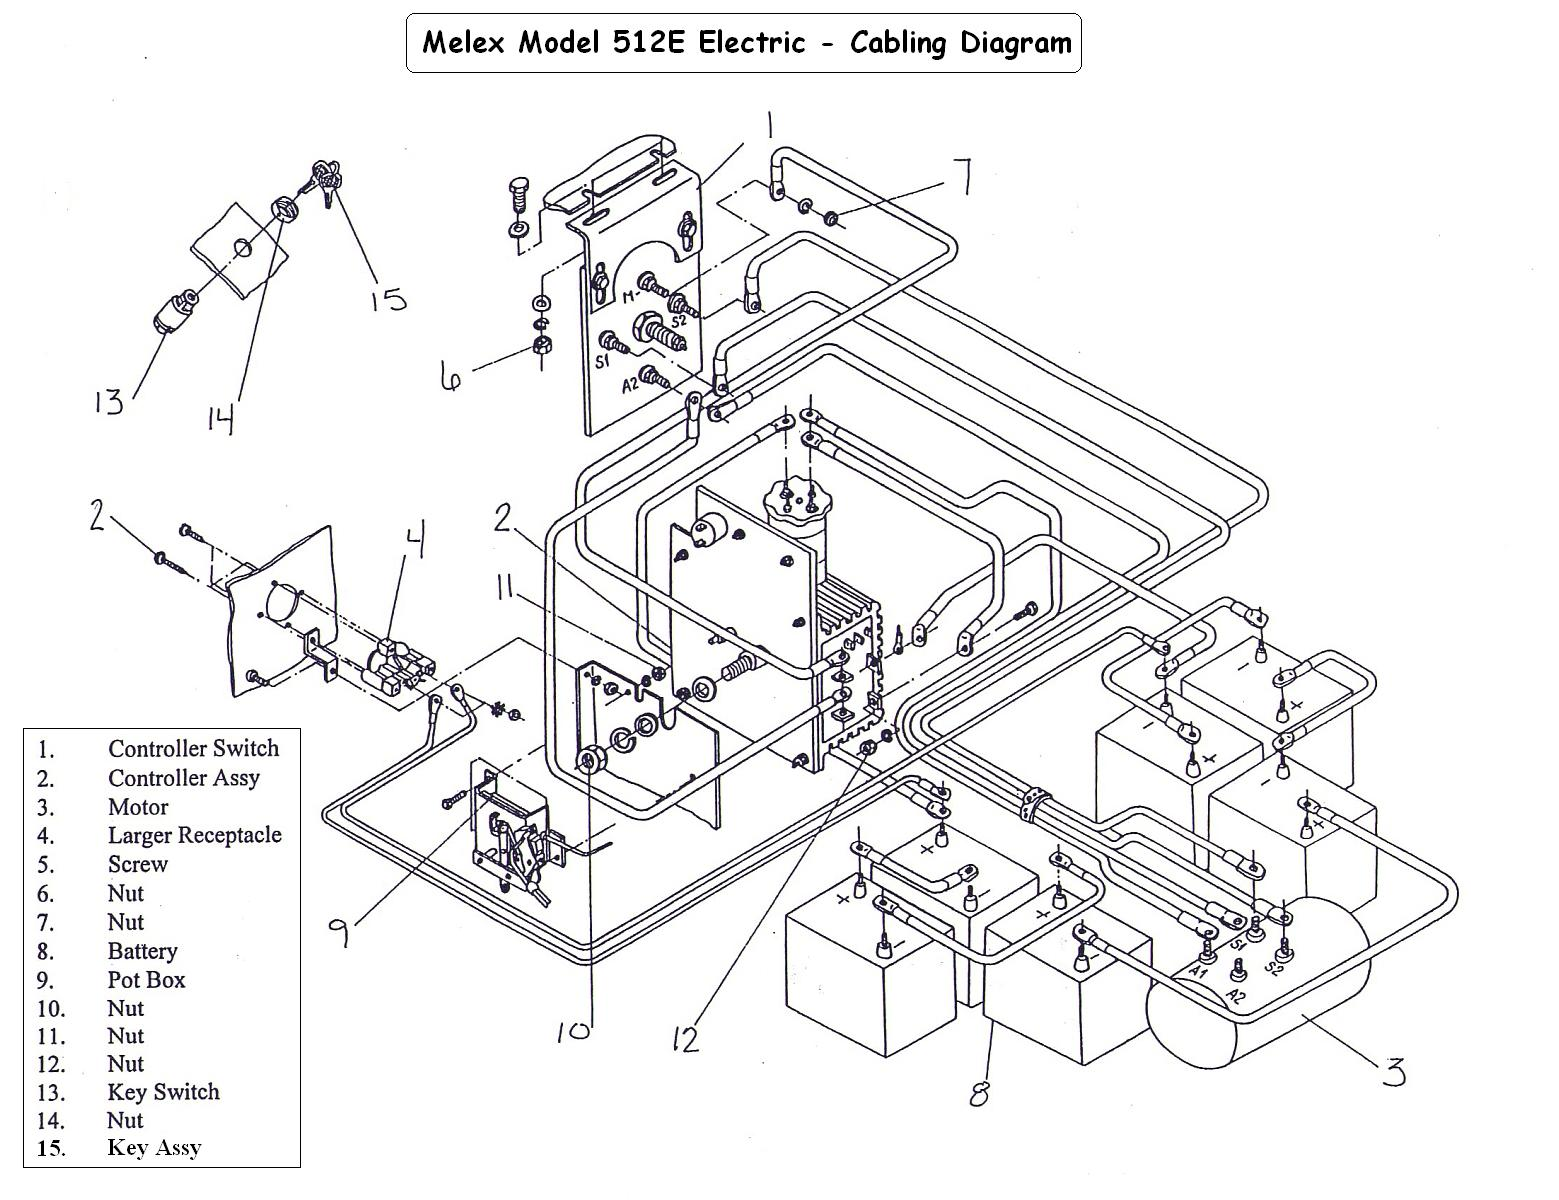 Melex512E_cabling_diagram?resize=665%2C512 yamaha wiring diagrams readingrat net g9 wiring diagram at edmiracle.co